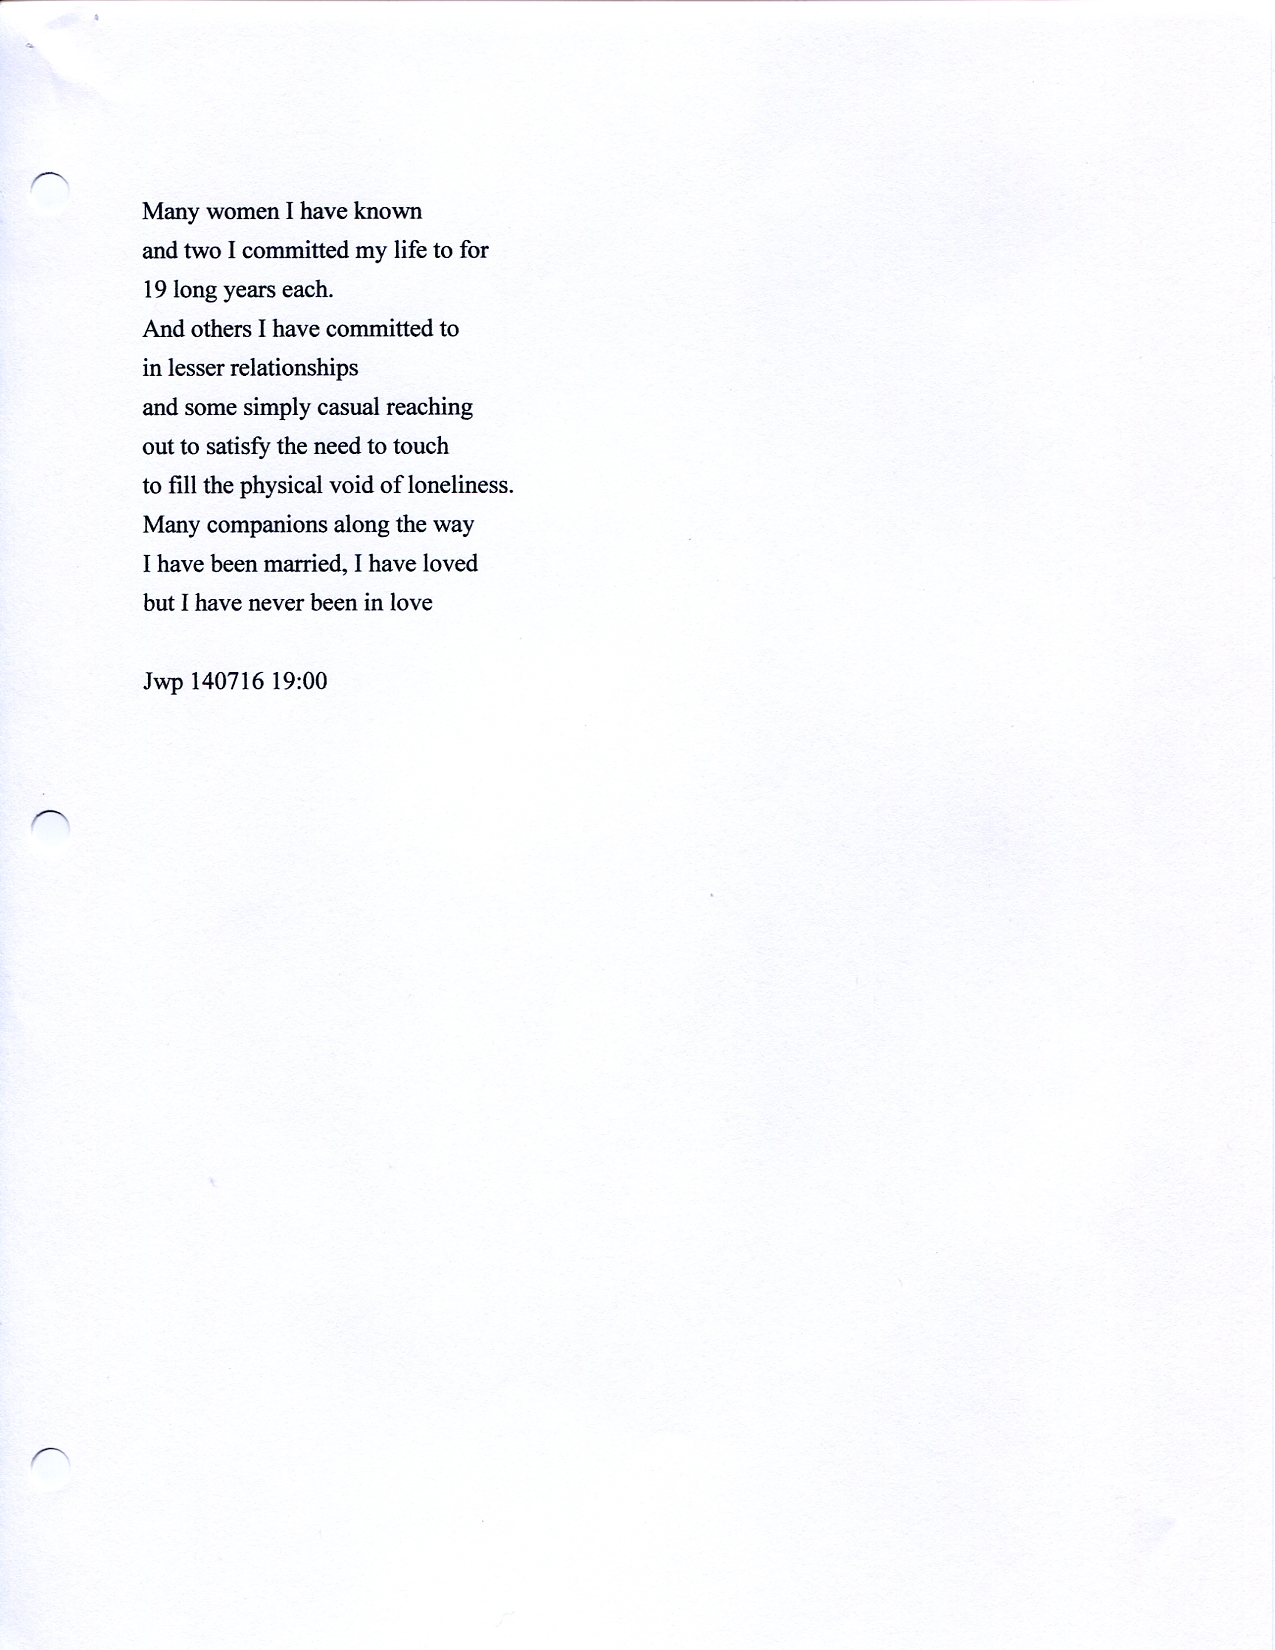 John WorldPeace Poems 2013